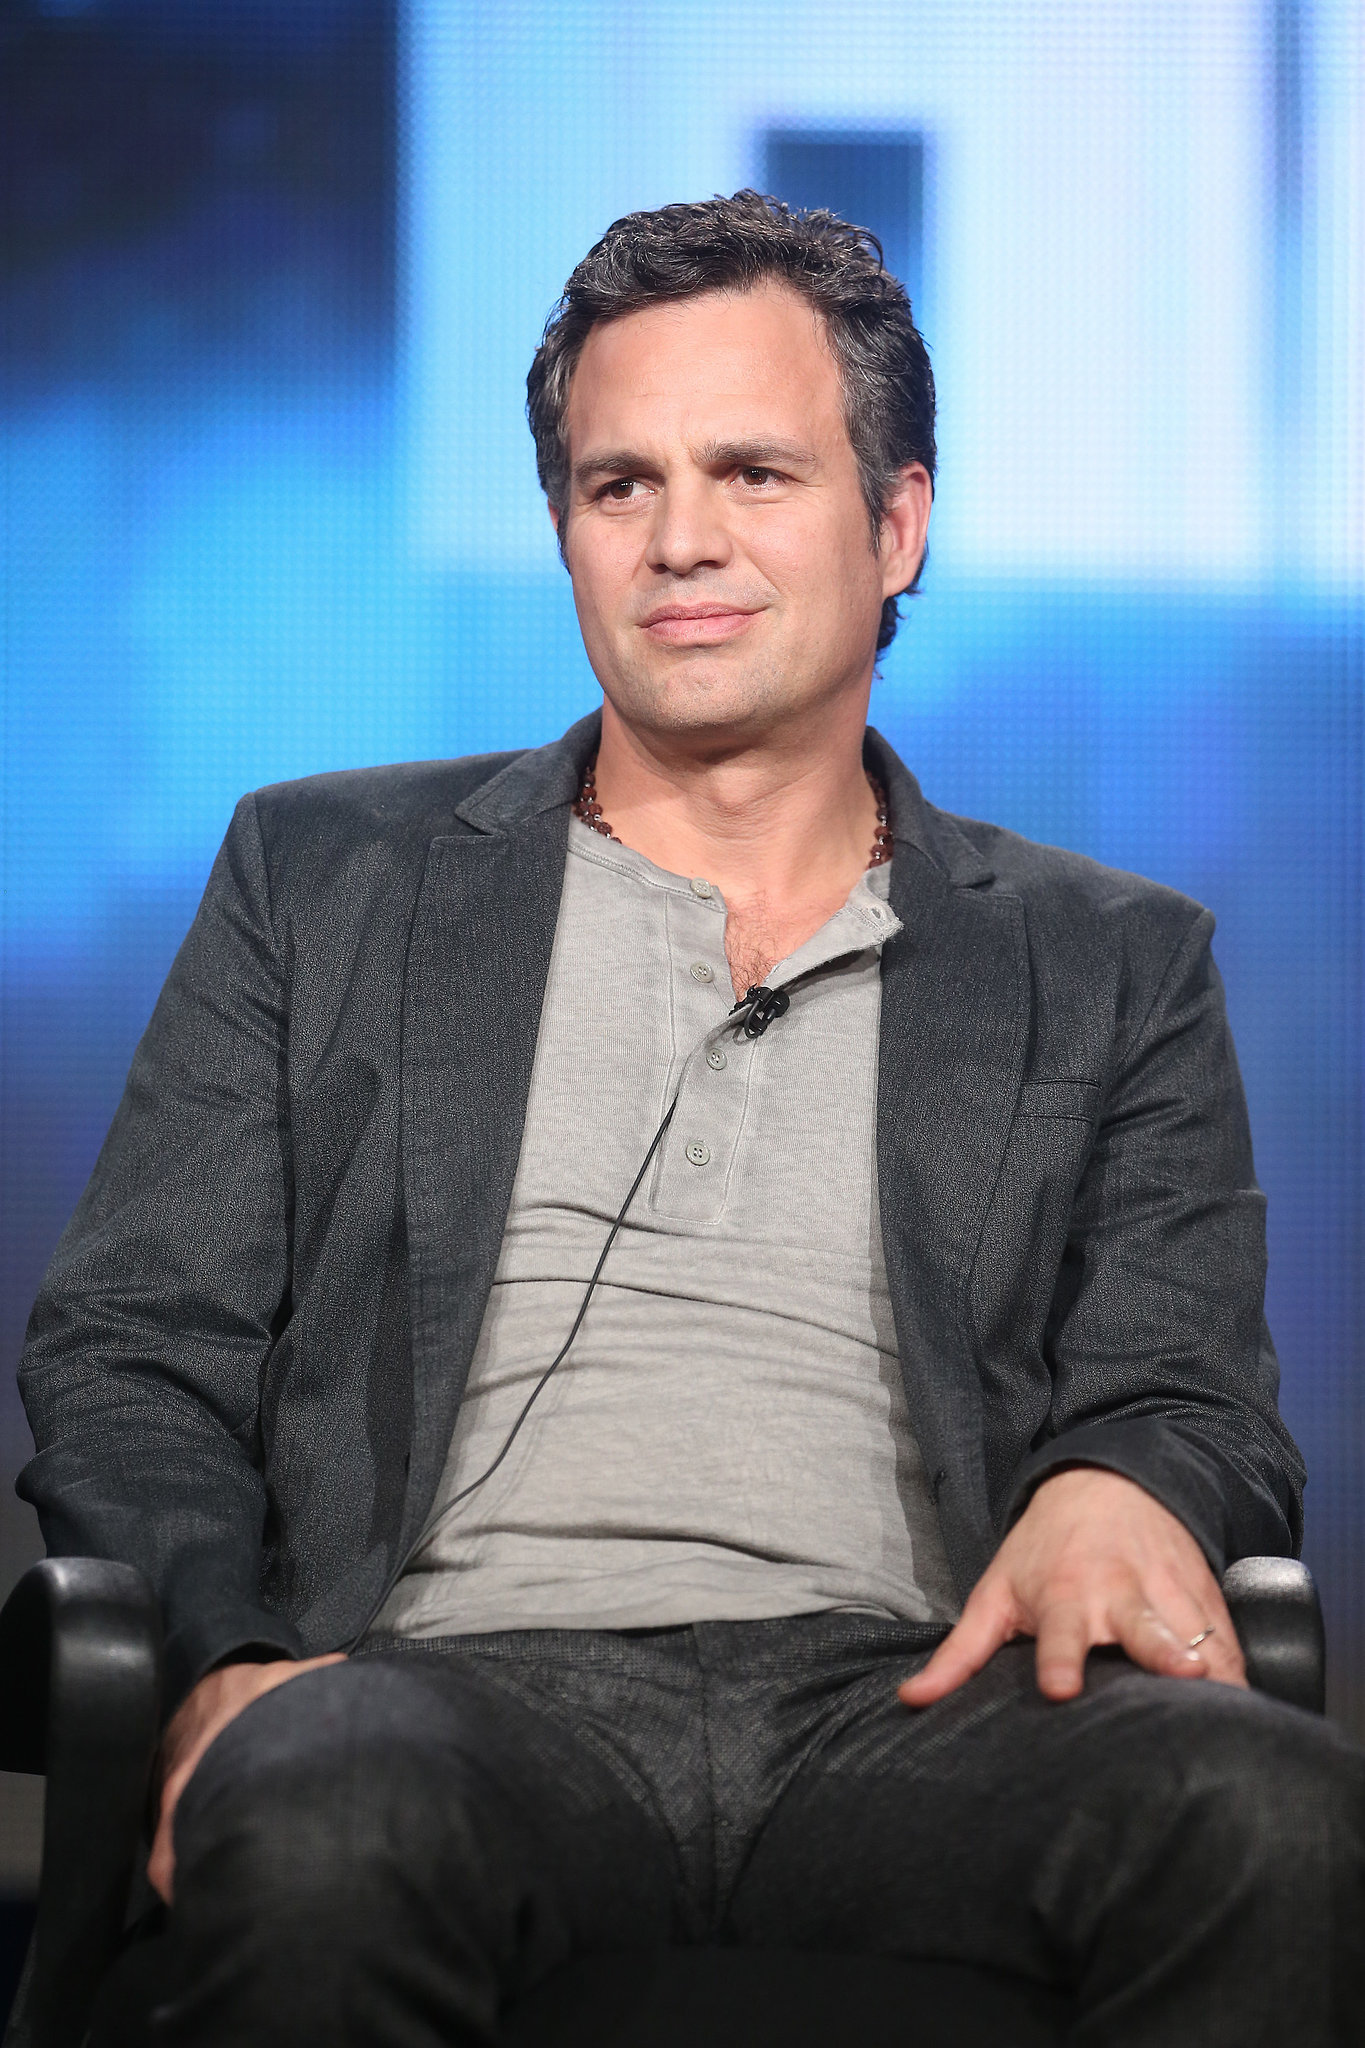 Mark Ruffalo looked perplexed during his Winter TCA panel.